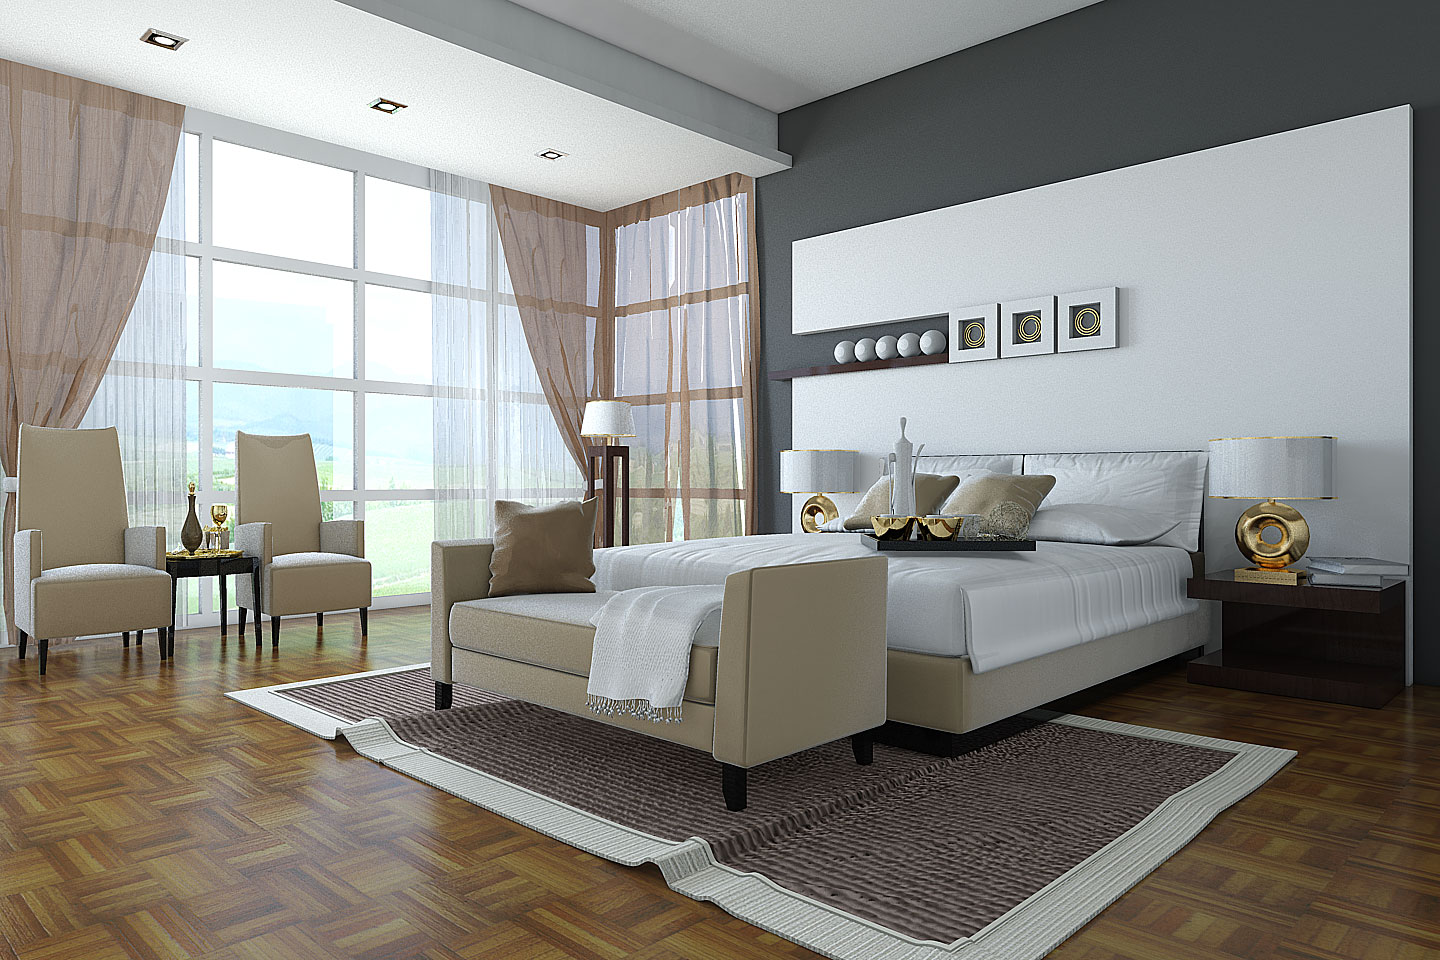 Bedrooms Design beautiful bedrooms